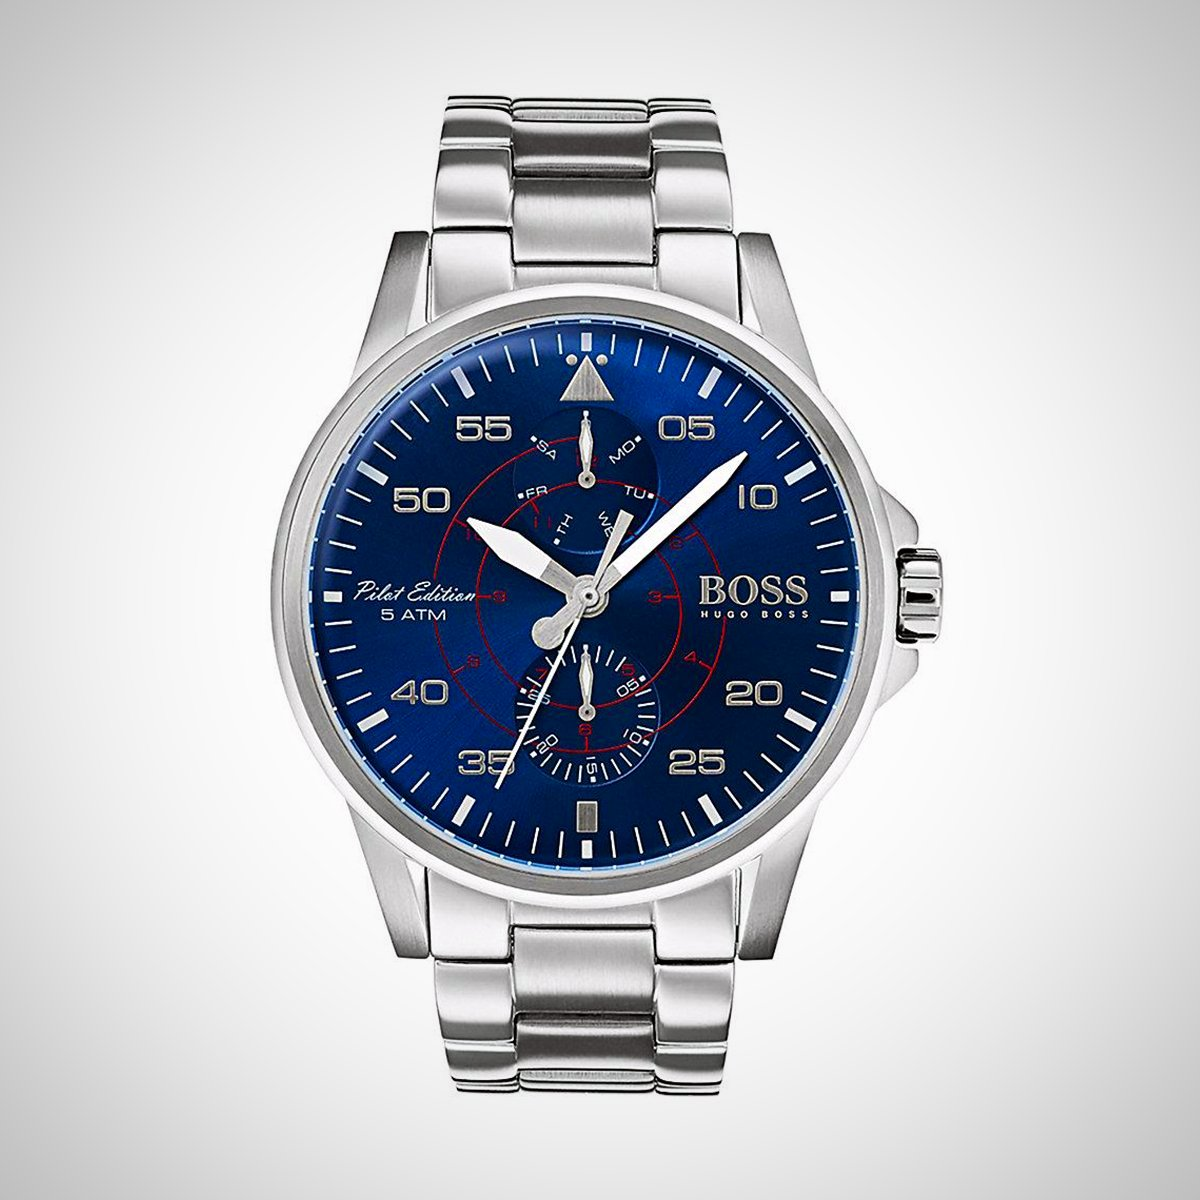 Hugo Boss 1513519 Stainless Steel and Blue Dial Quartz Watch